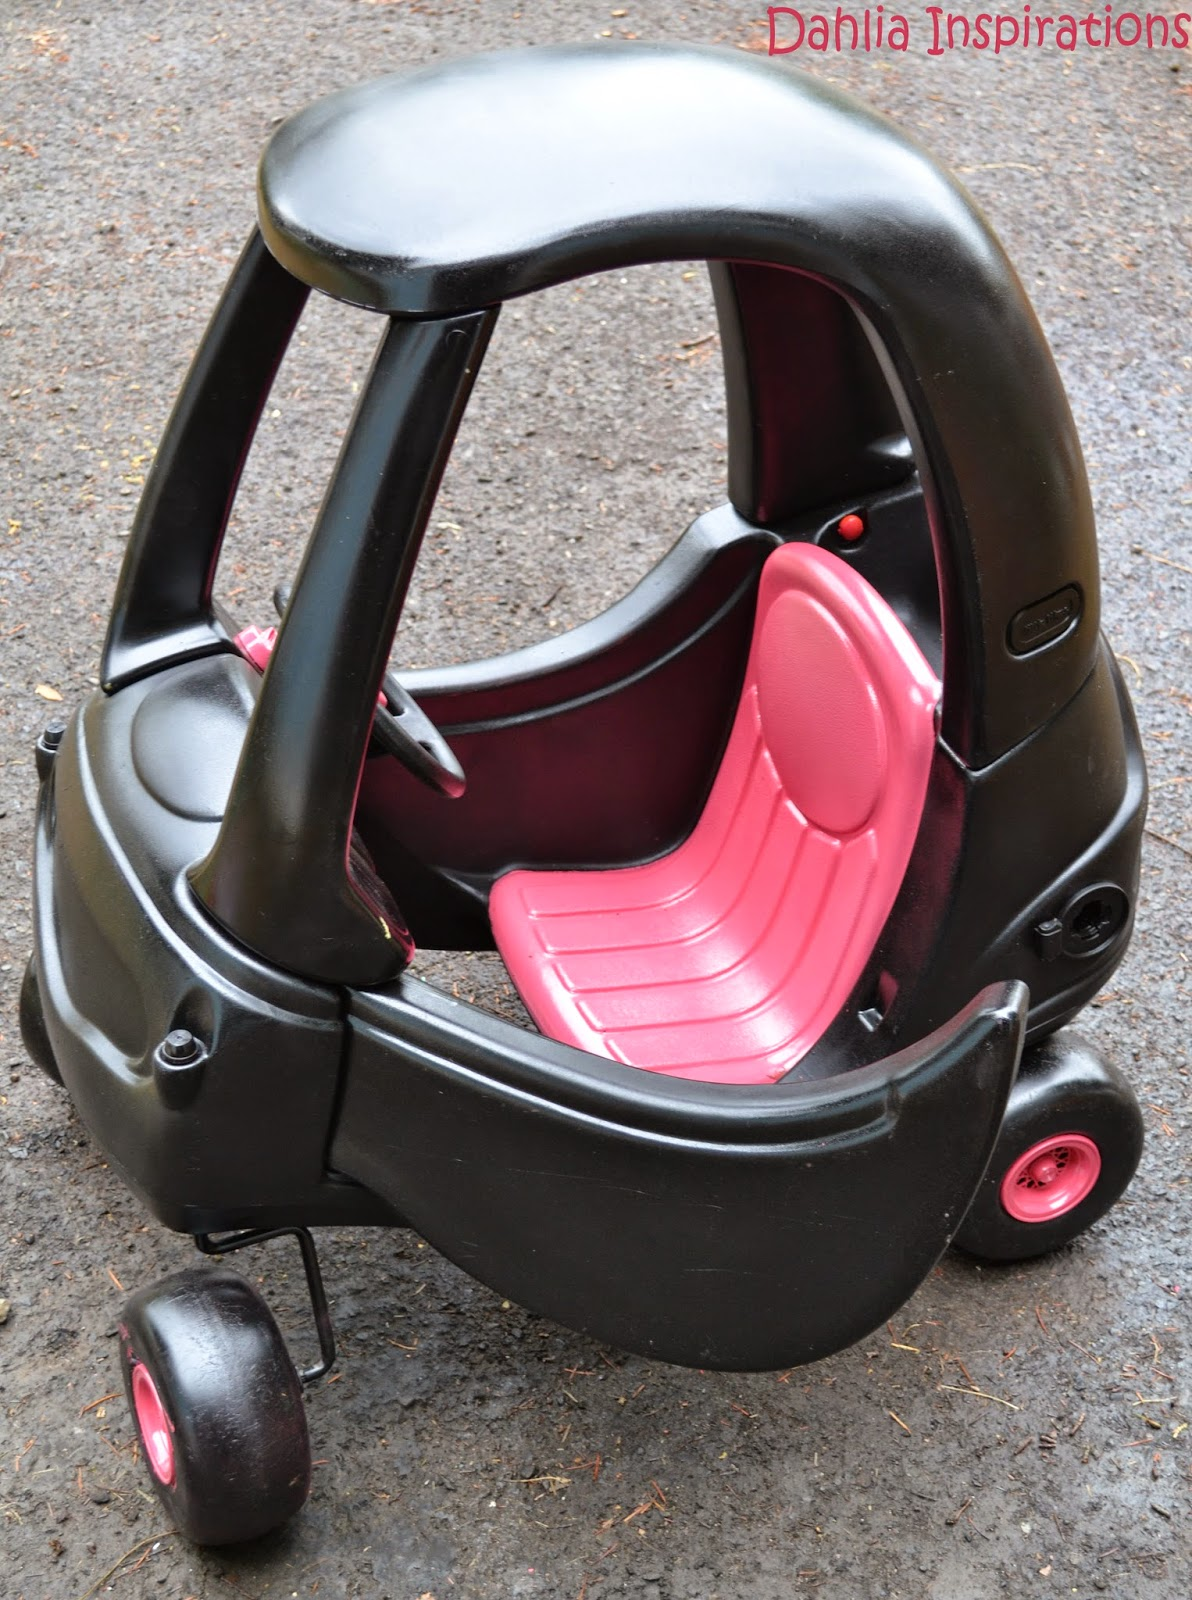 Pin by Sara Asher on Cool project! | Cozy coupe, Cozy